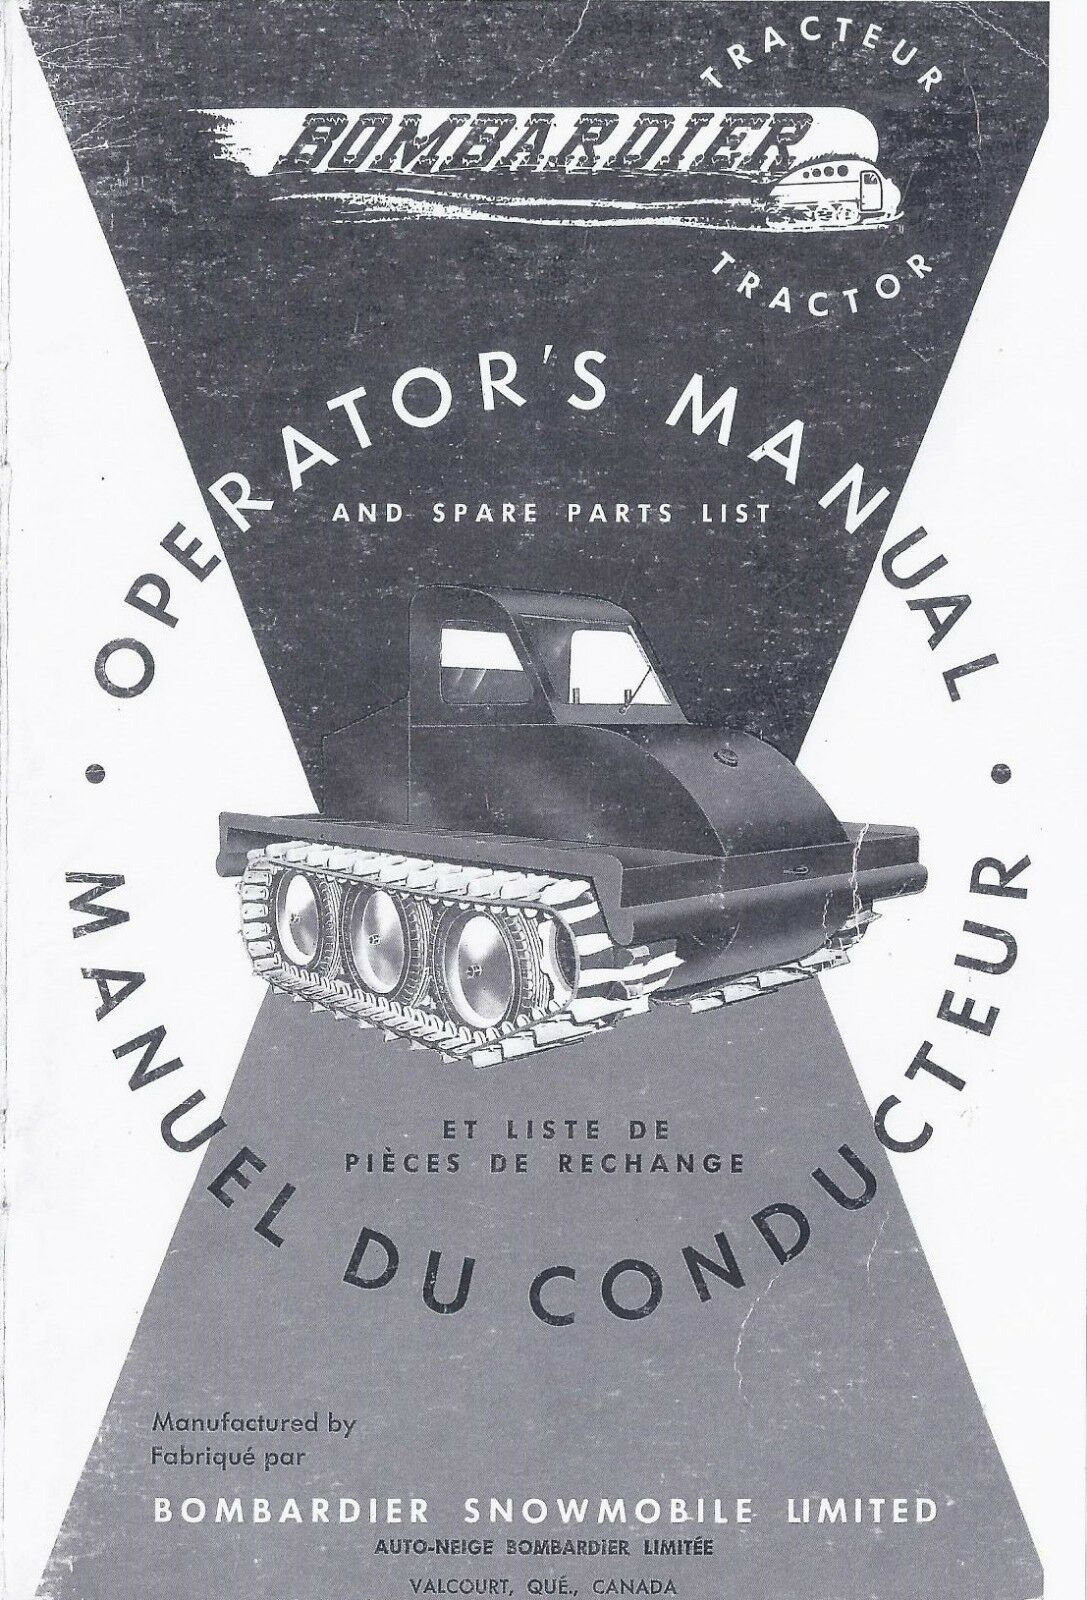 Operator's Manual and Spare Parts List Bombardier J-5 Tractor Sidewalk Plow